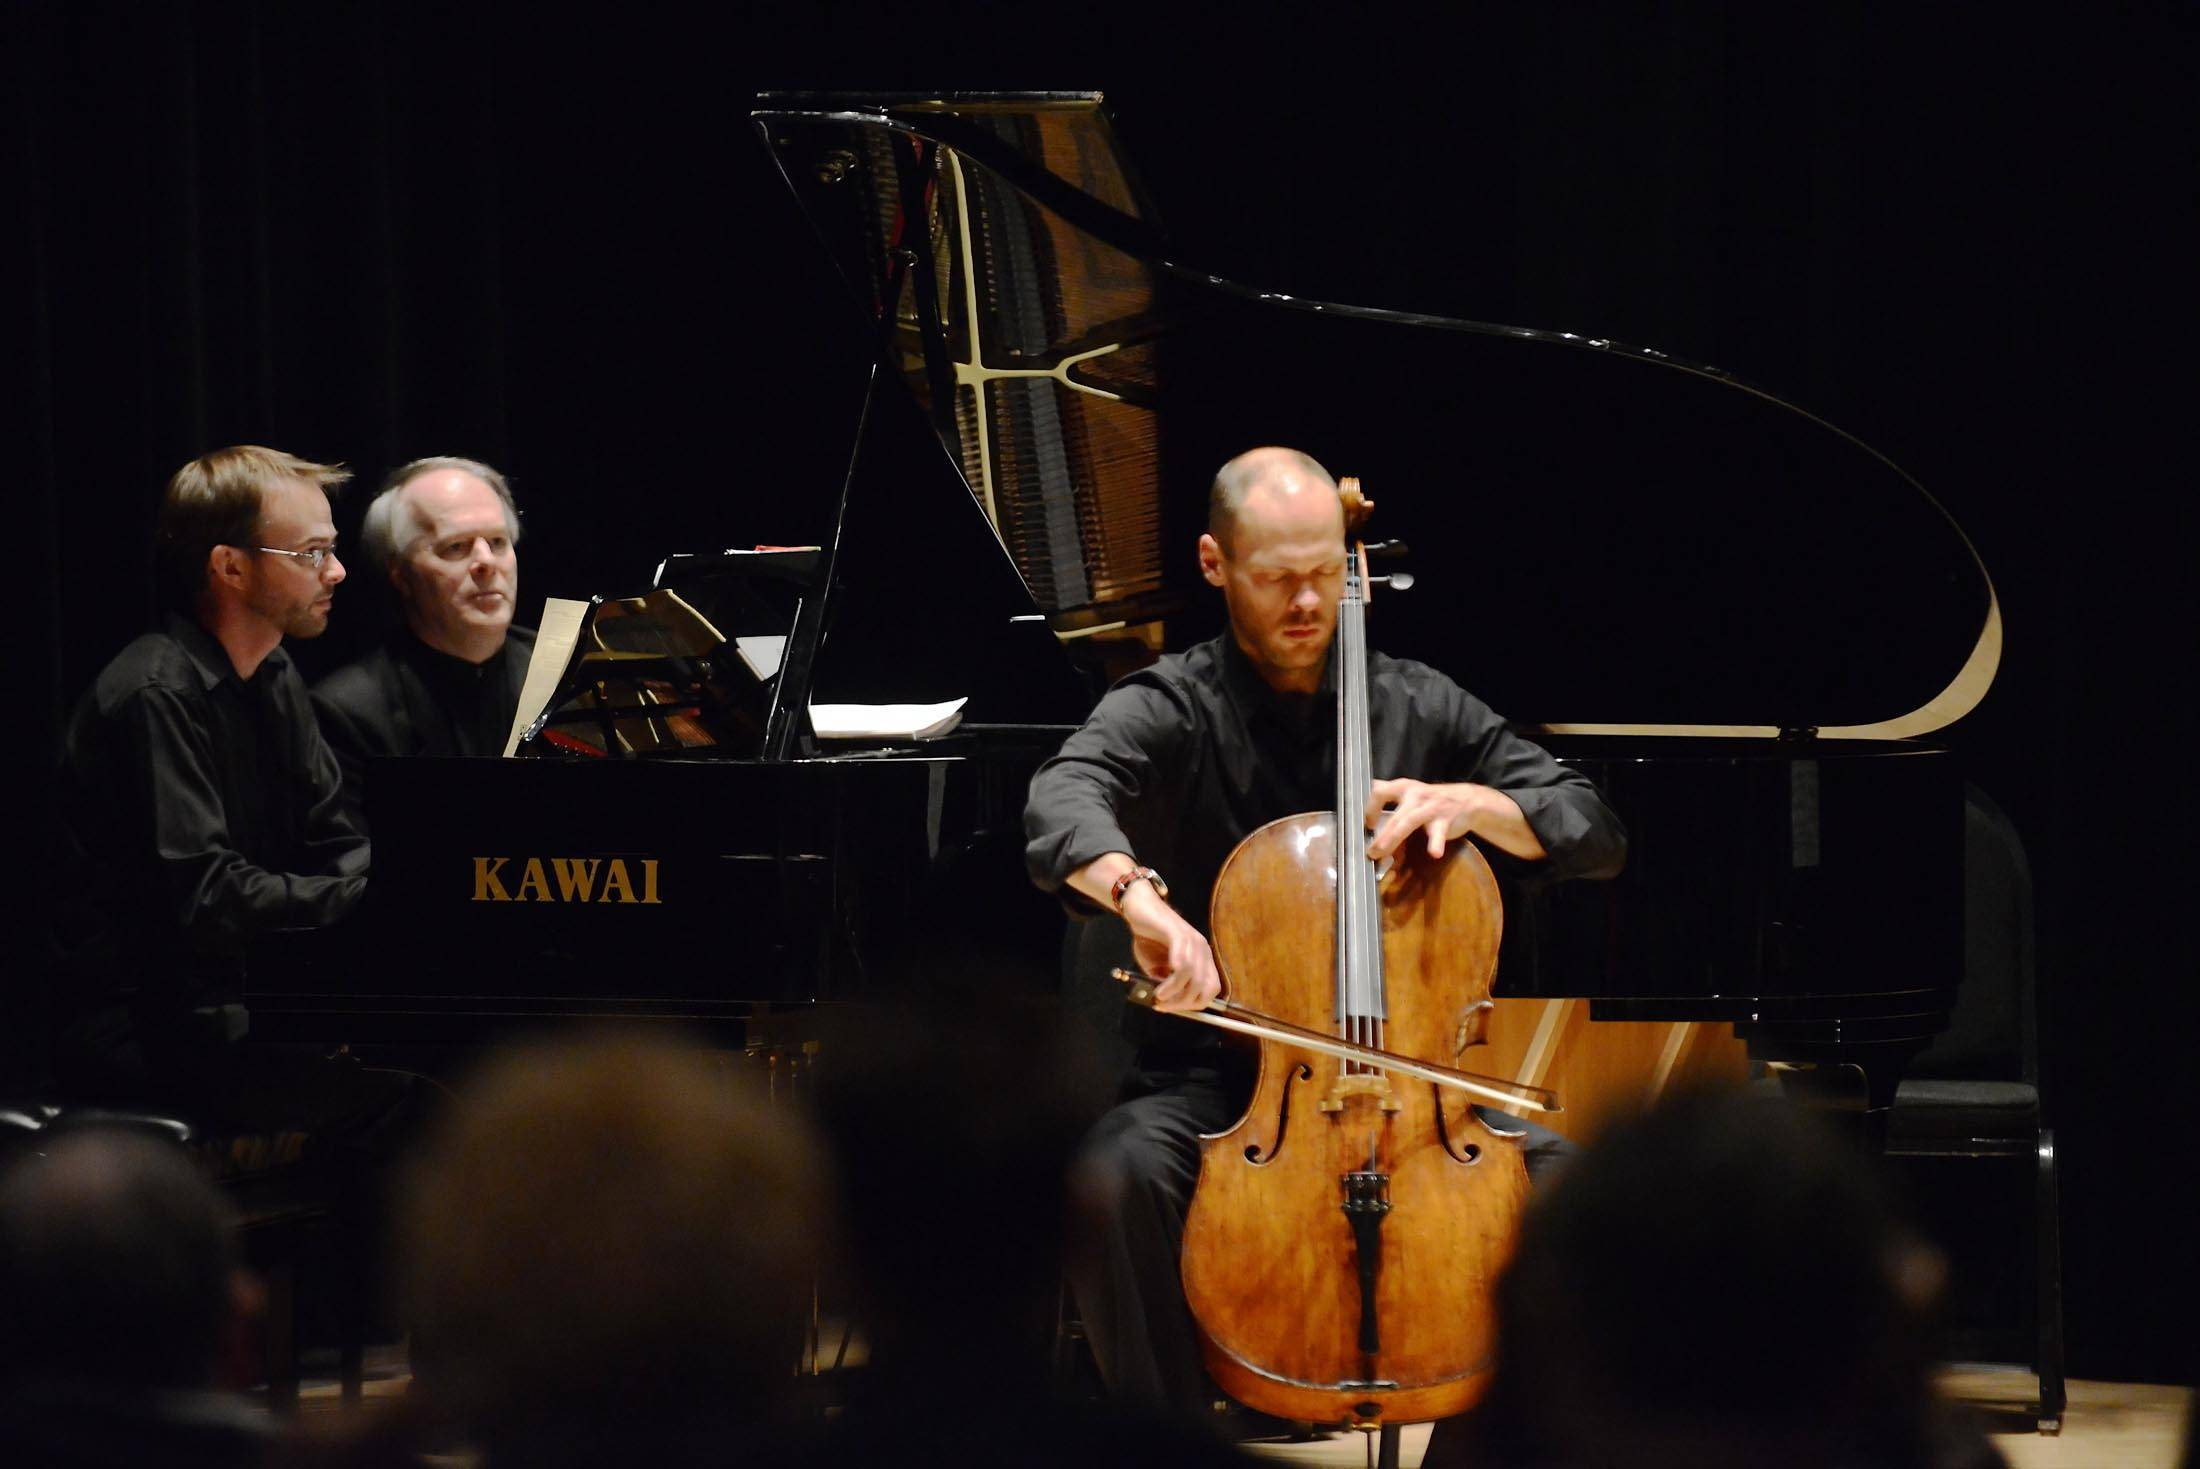 Brant Taylor plays the cello as the Elgin Youth Symphony Orchestra faculty raises funds through a recital at Elgin Community College. David Anderson accompanies him on piano.